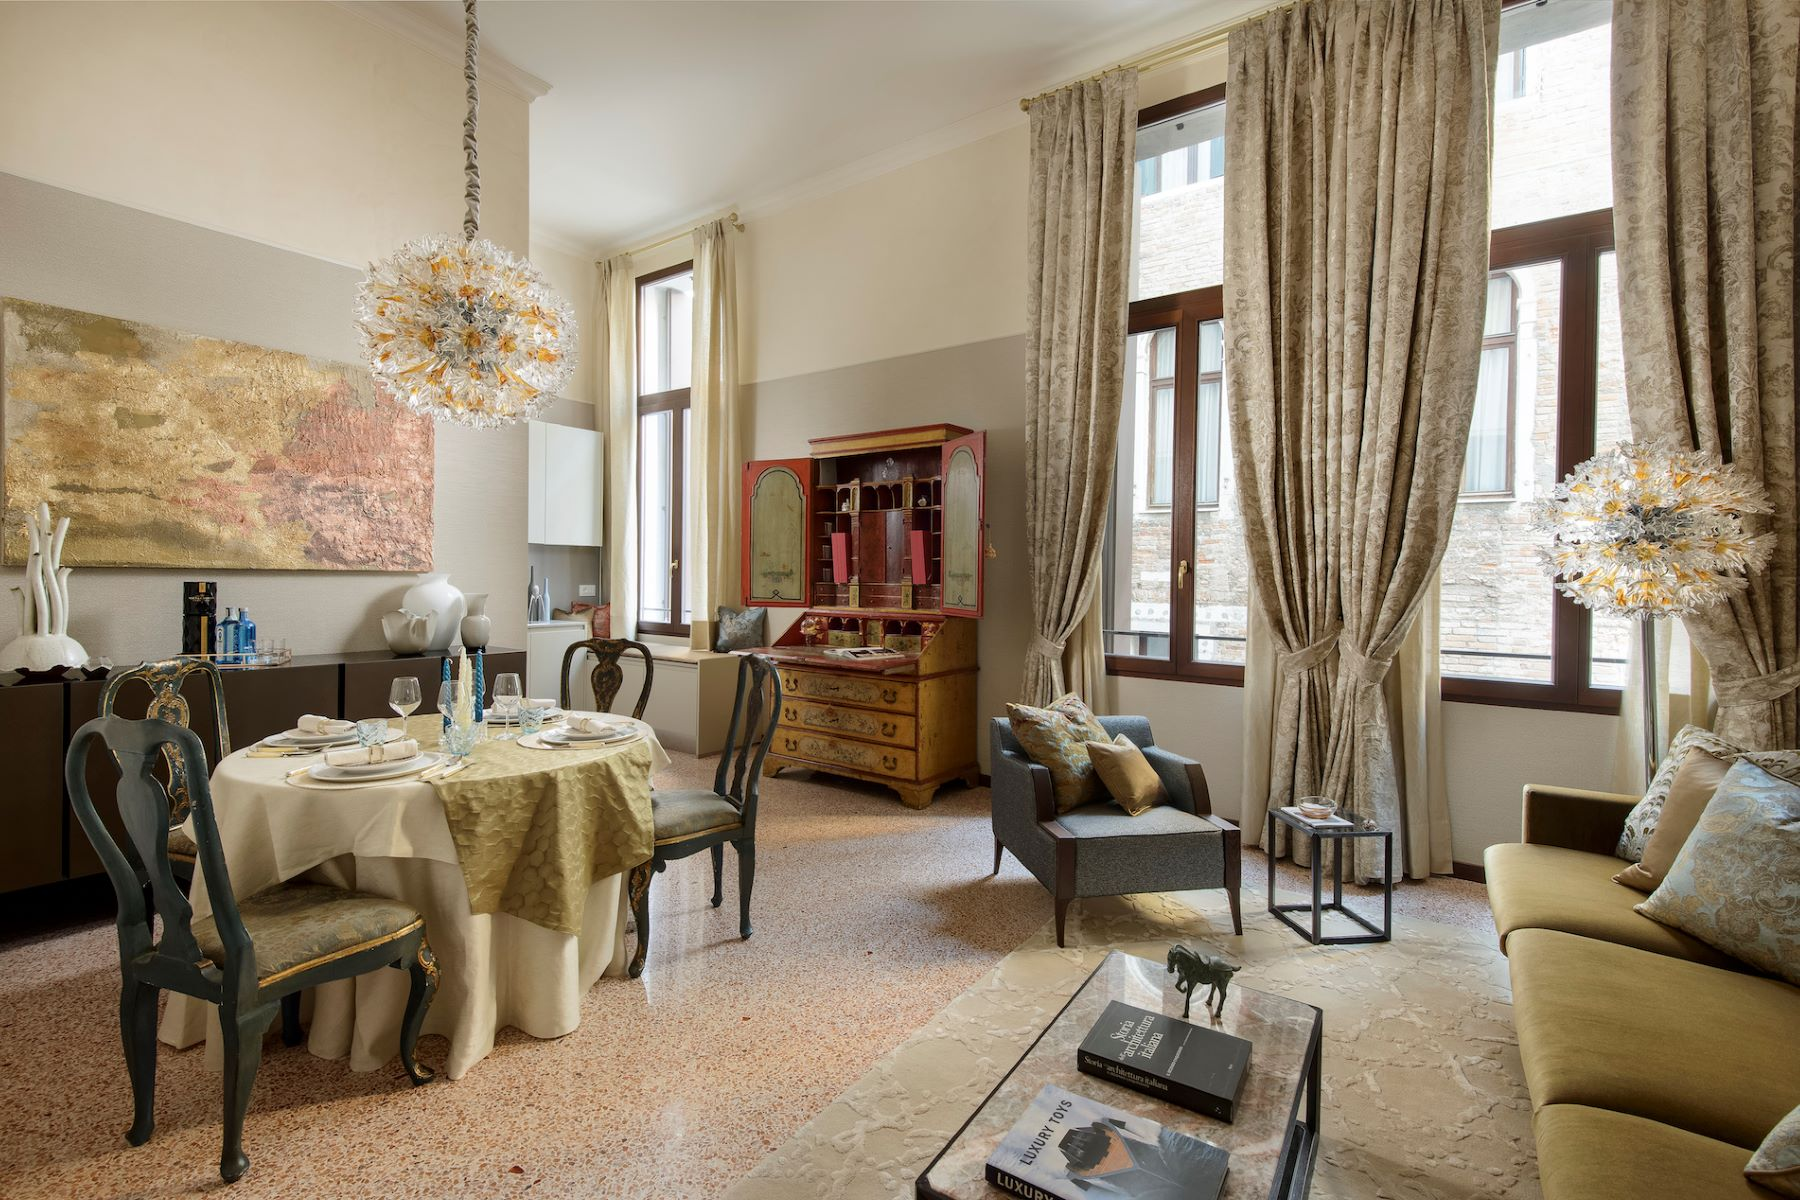 Single Family Homes for Sale at Vignole apartment at Palazzo Moro Venice, Venice Italy